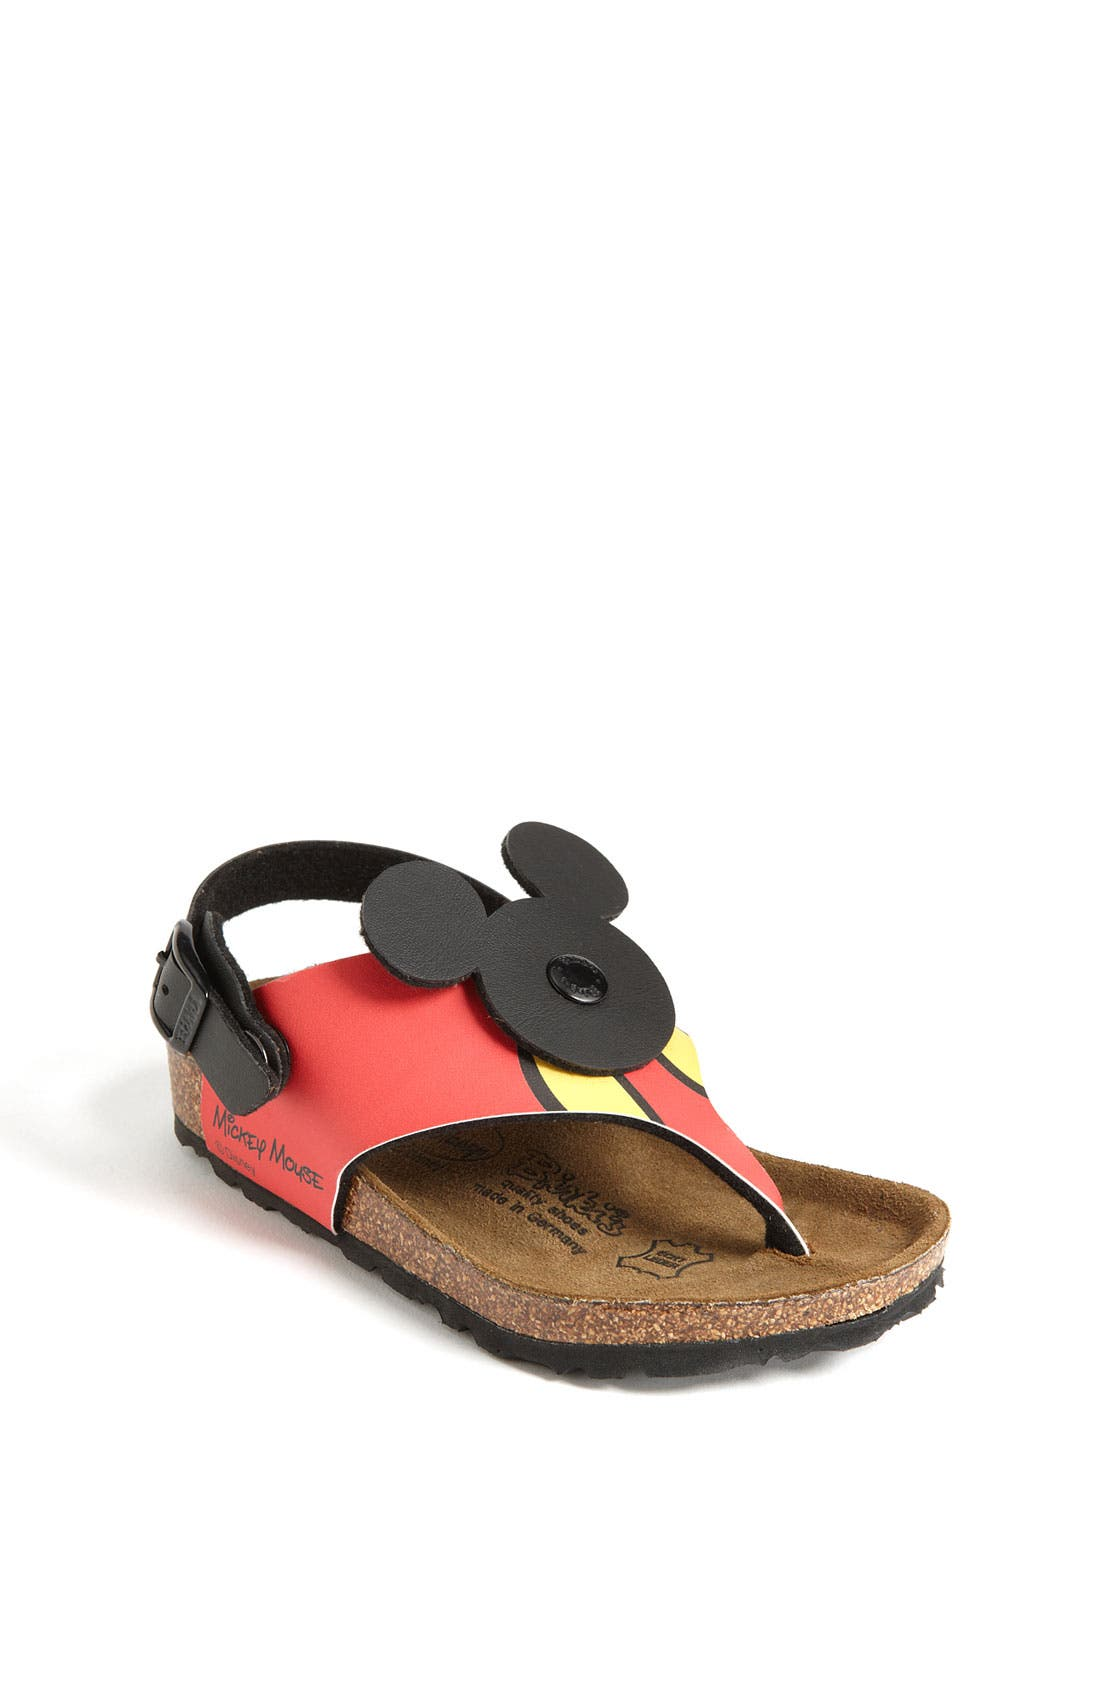 Main Image - Birki's® Kids 'Sumatra Mickey' Thong Sandal (Toddler & Little Kid)